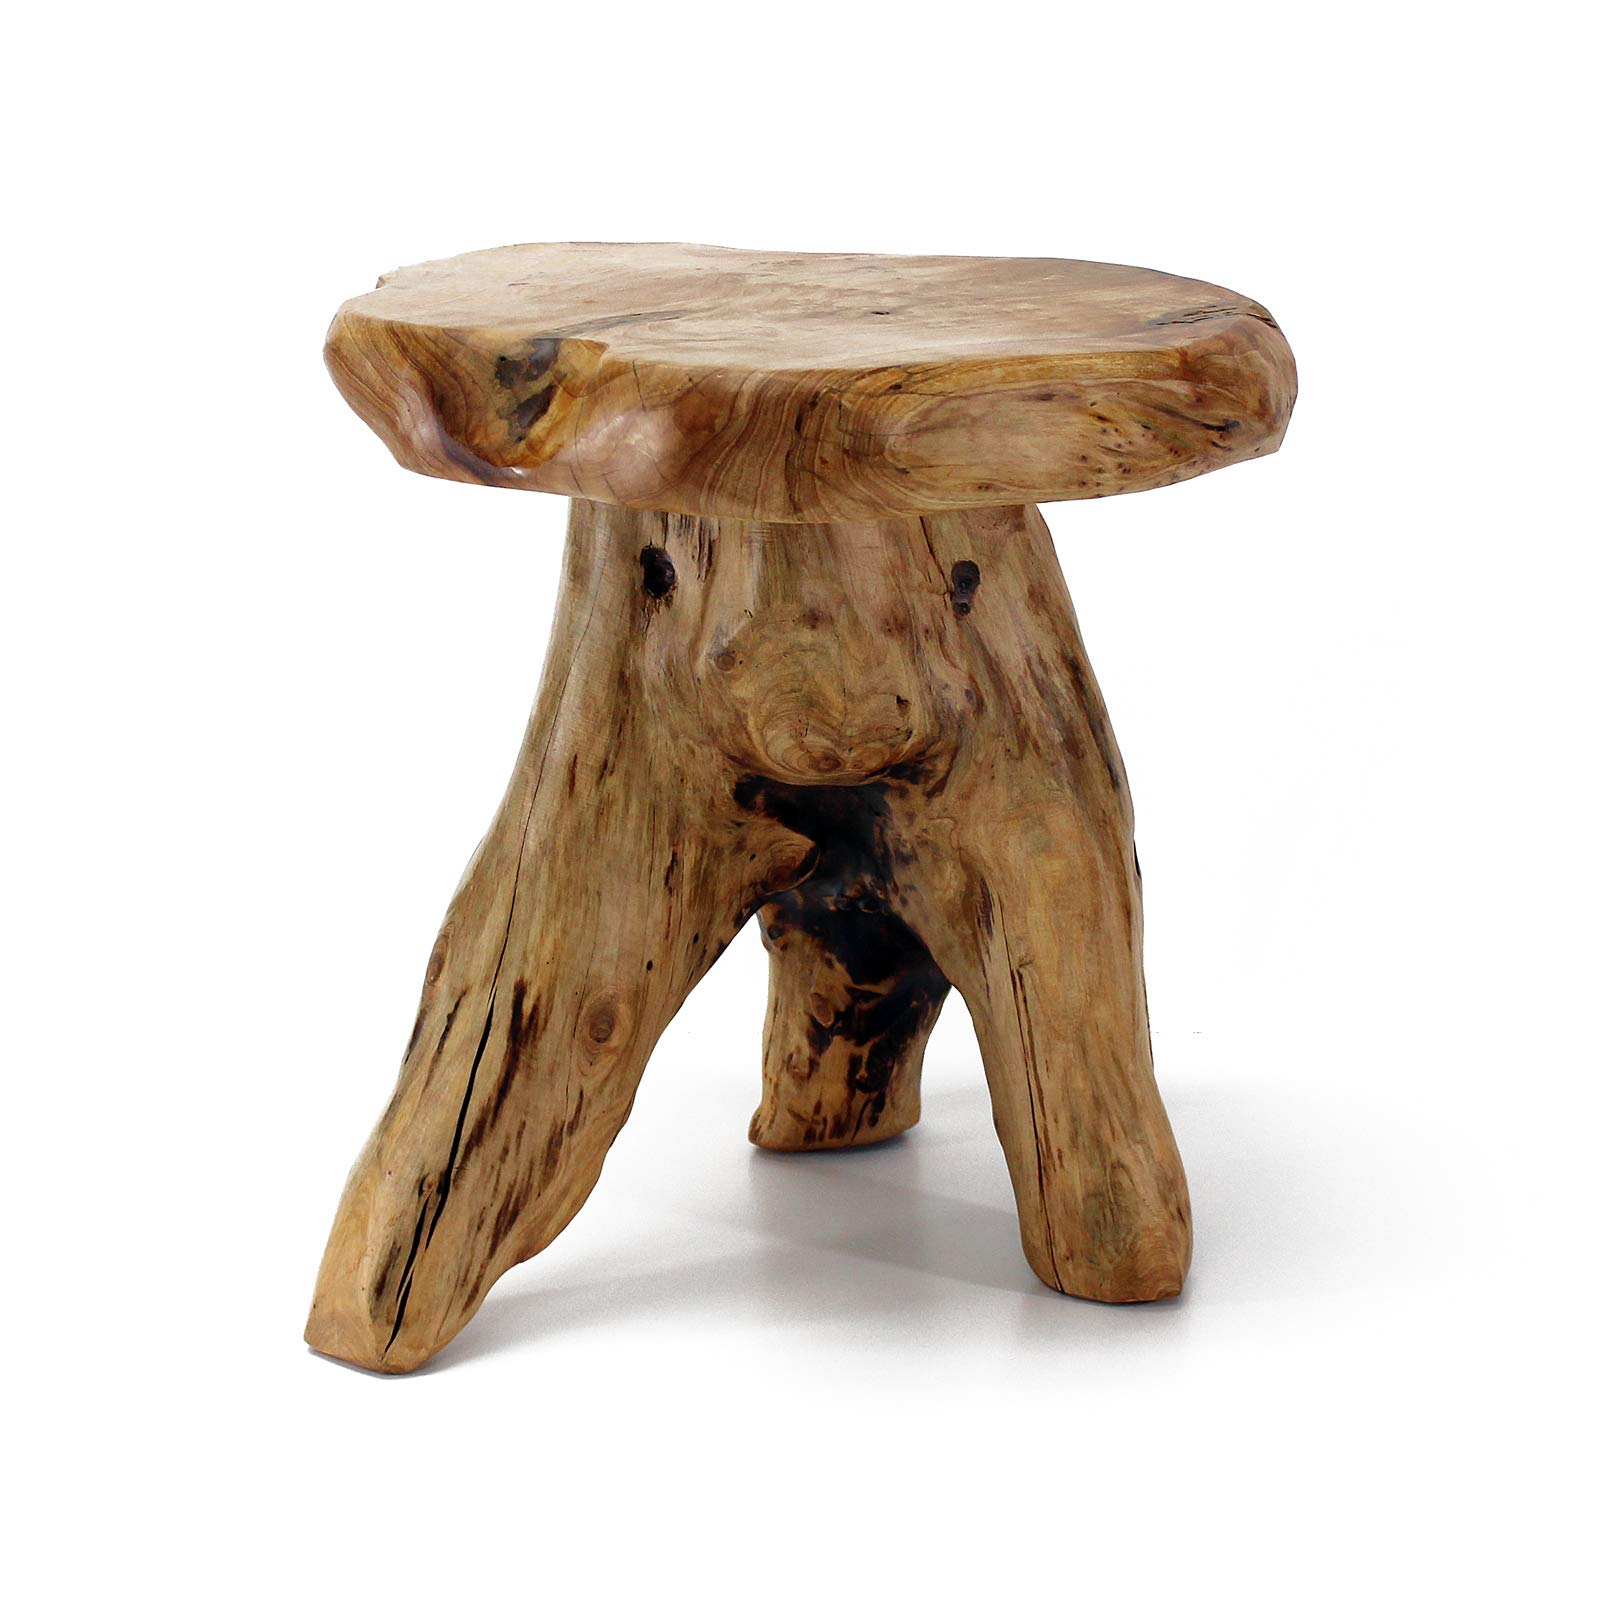 best rated outdoor side tables helpful customer reviews wood stump accent table welland tree stool live edge natural plant stand nightstand white patio painted nightstands pottery